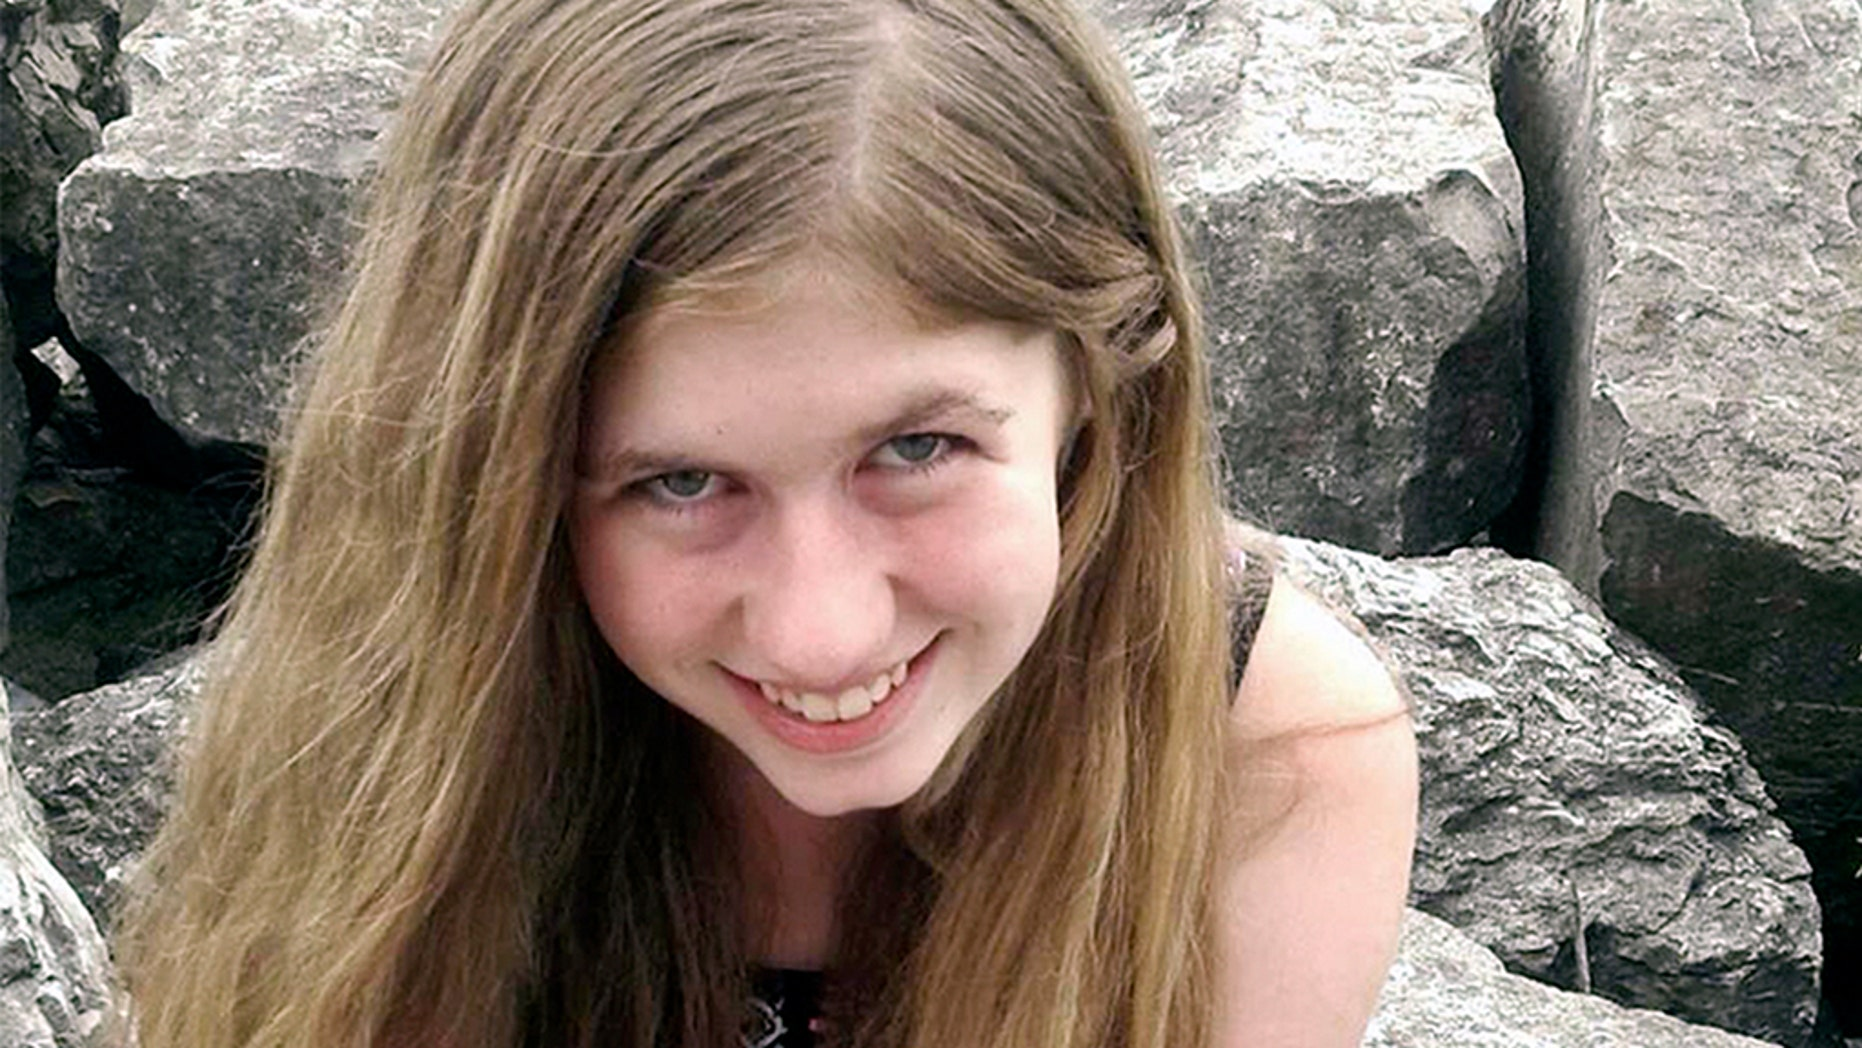 Jayme Closs, who was found Thursday, had vanished Oct. 15, after her parents were found fatally shot in their home in Barron, Wis. (Barron County)